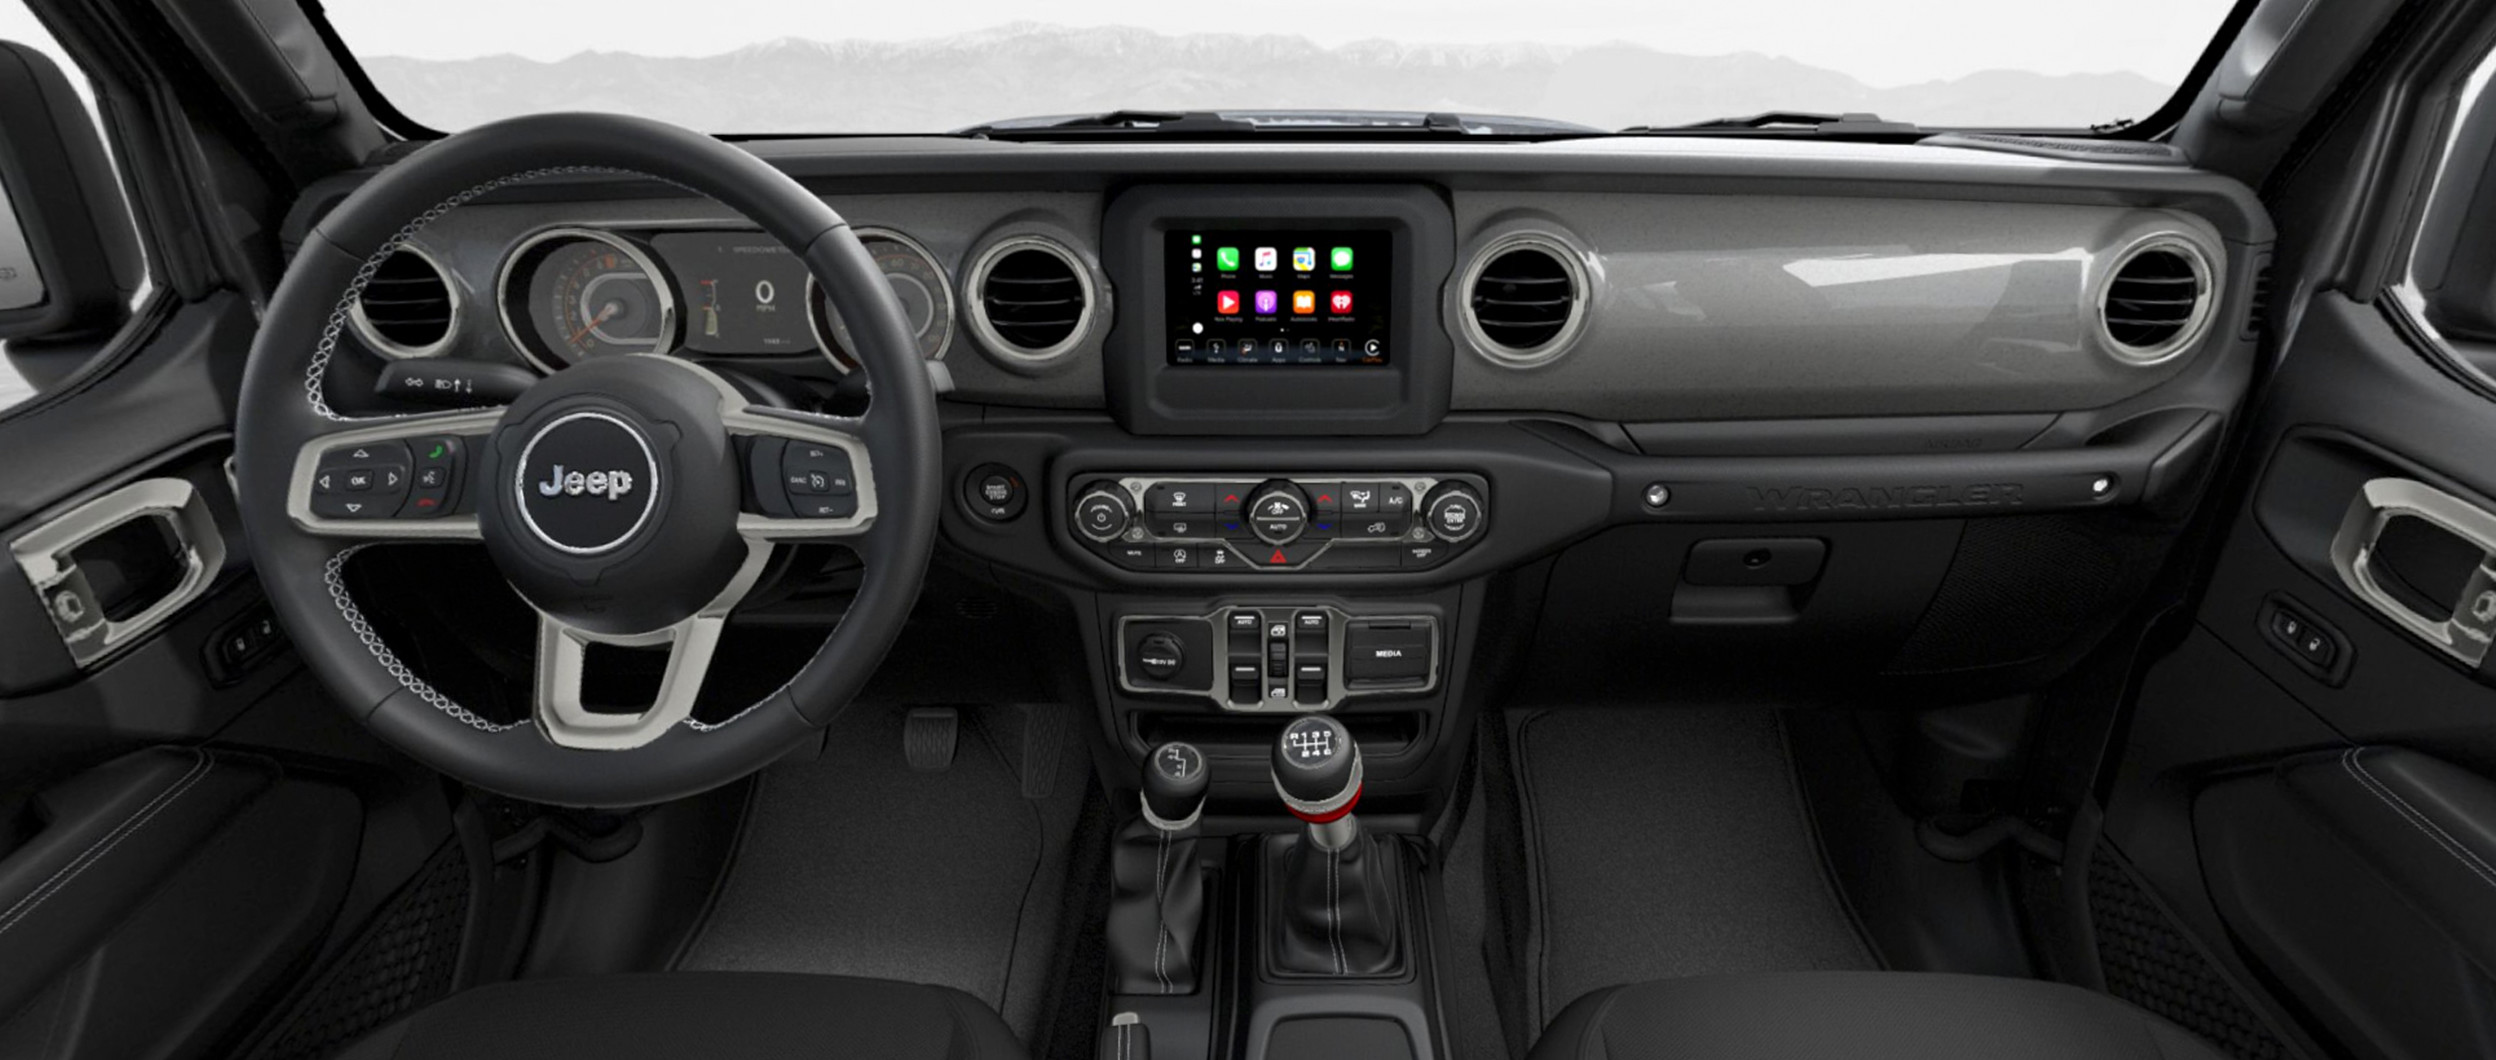 2019 Jeep Wrangler - Interior Gallery | Jeep Canada